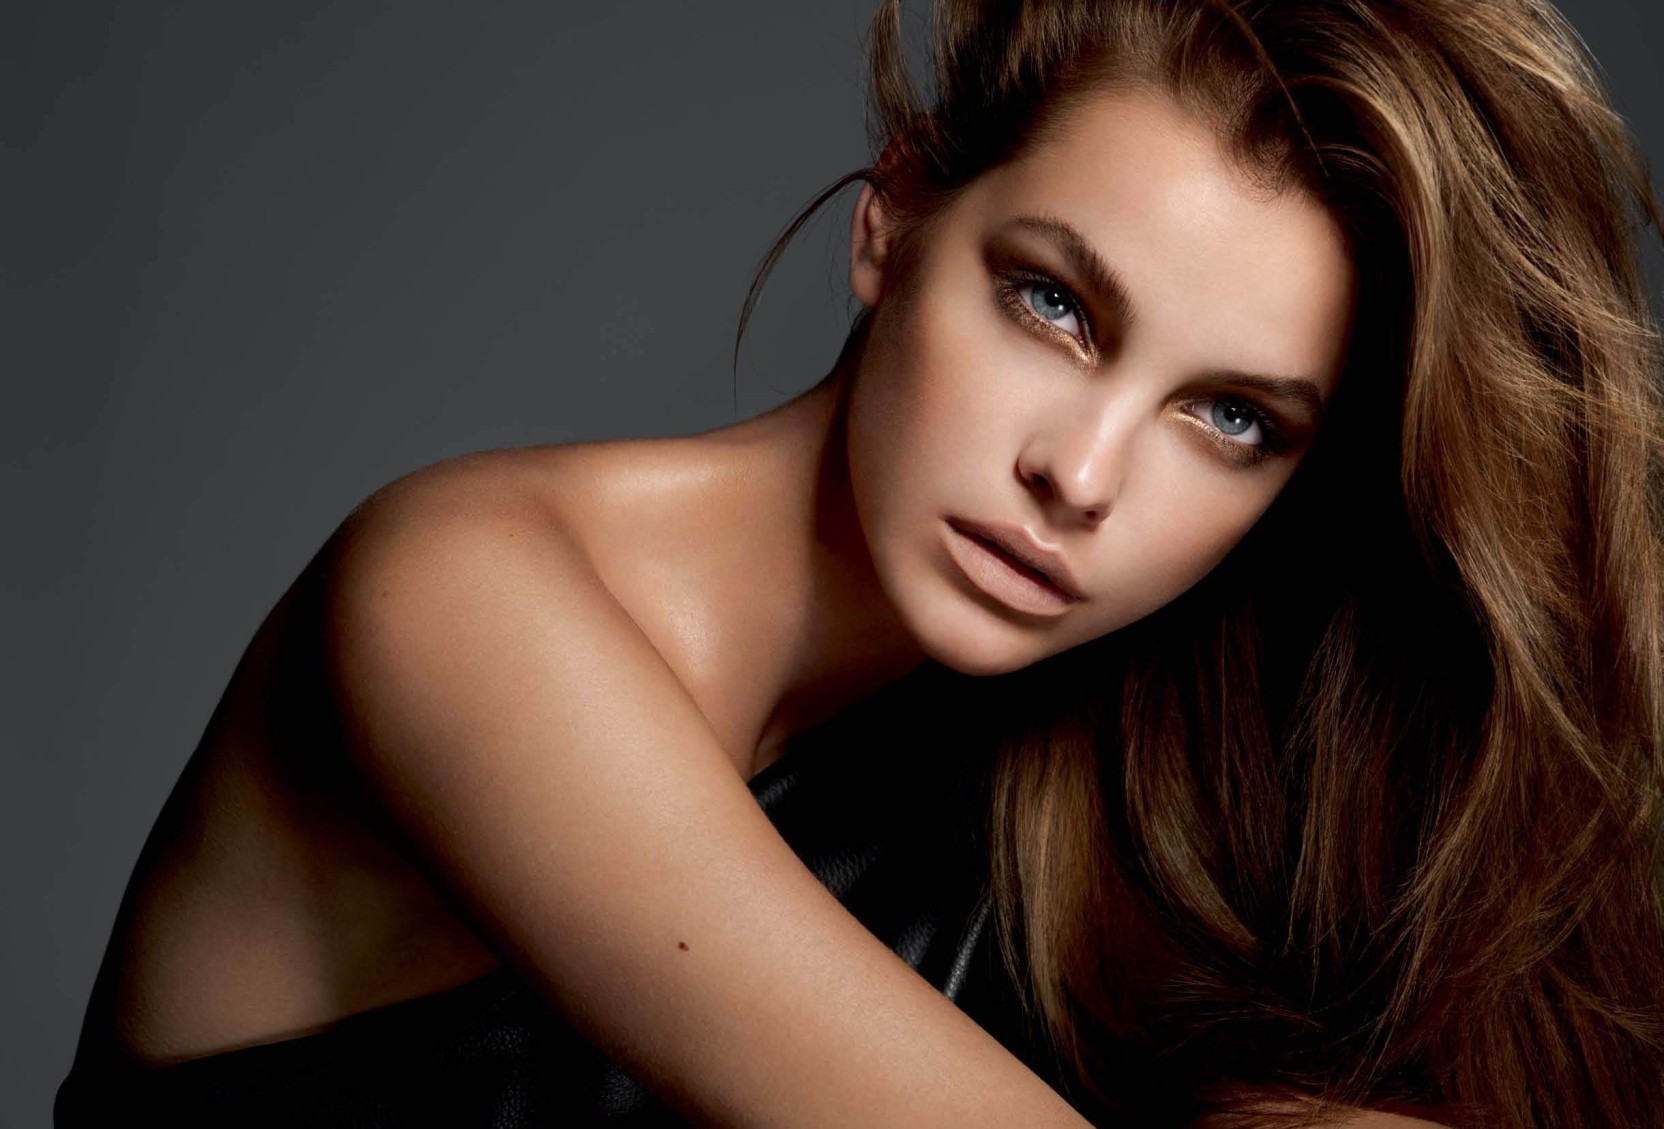 Celebrity Barbara Palvin nude (89 foto and video), Tits, Leaked, Selfie, swimsuit 2015